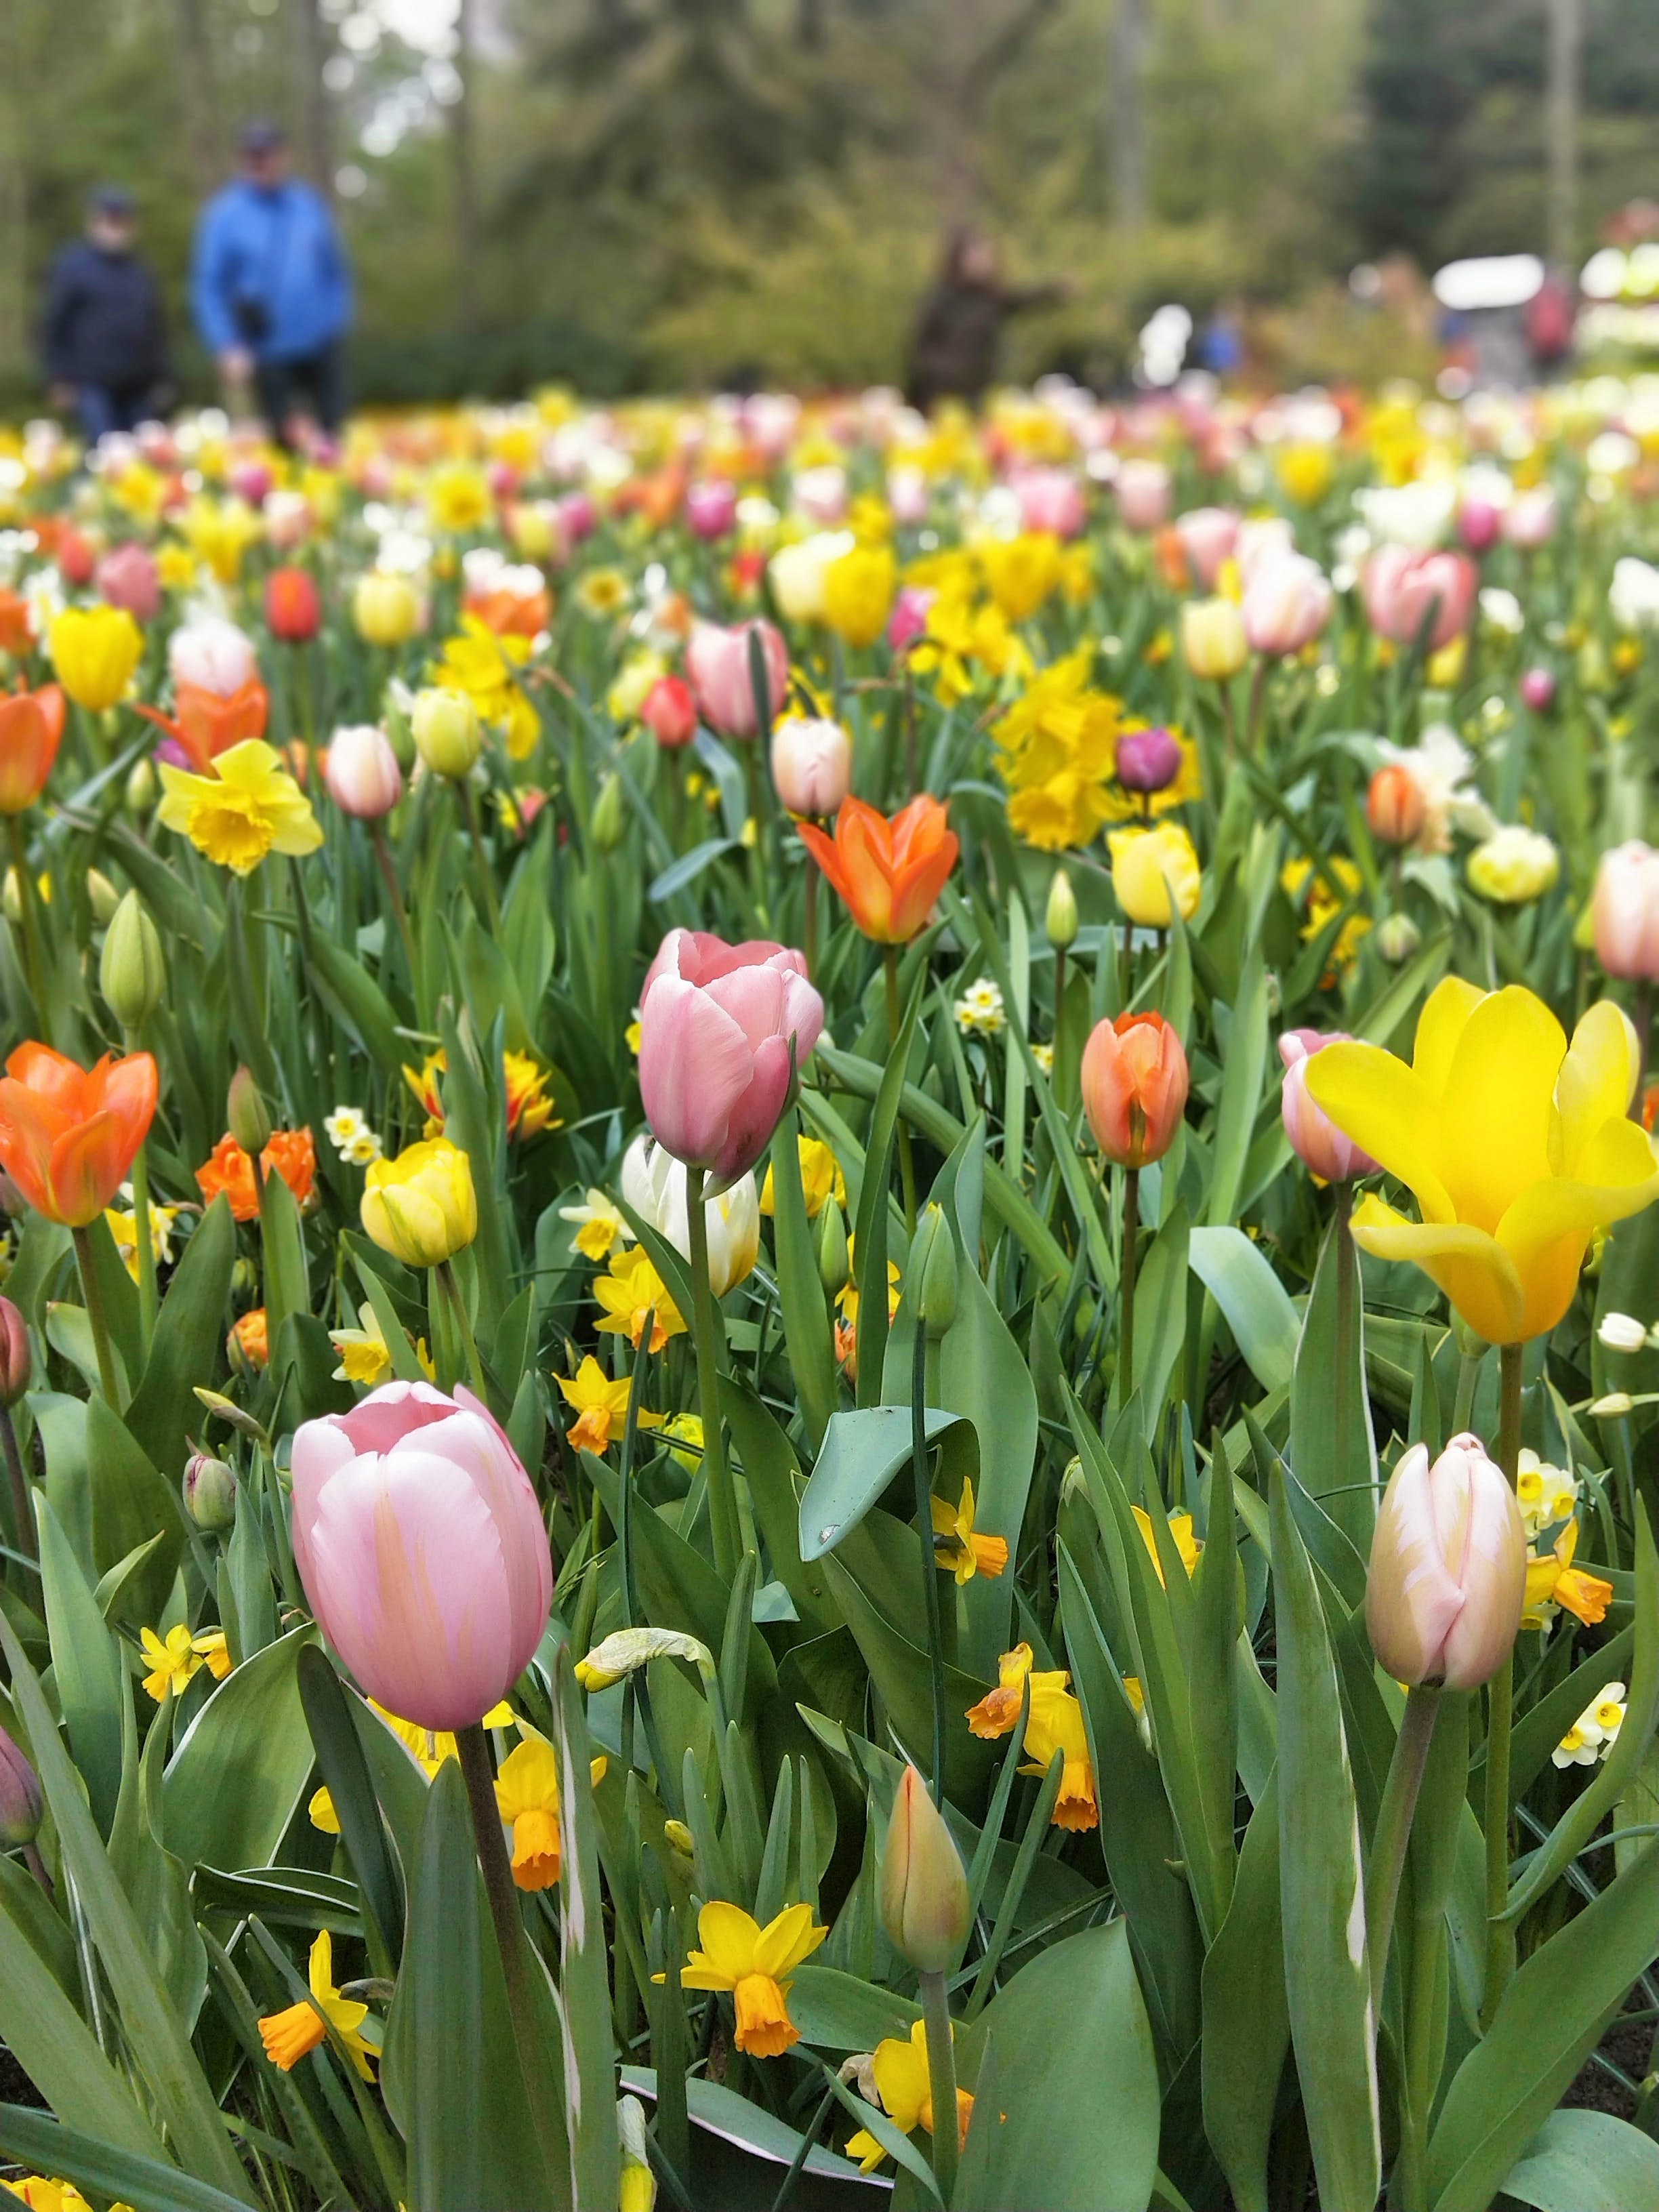 A close-up of some tulips in full bloom at Keukenhof Gardens, Lisse.